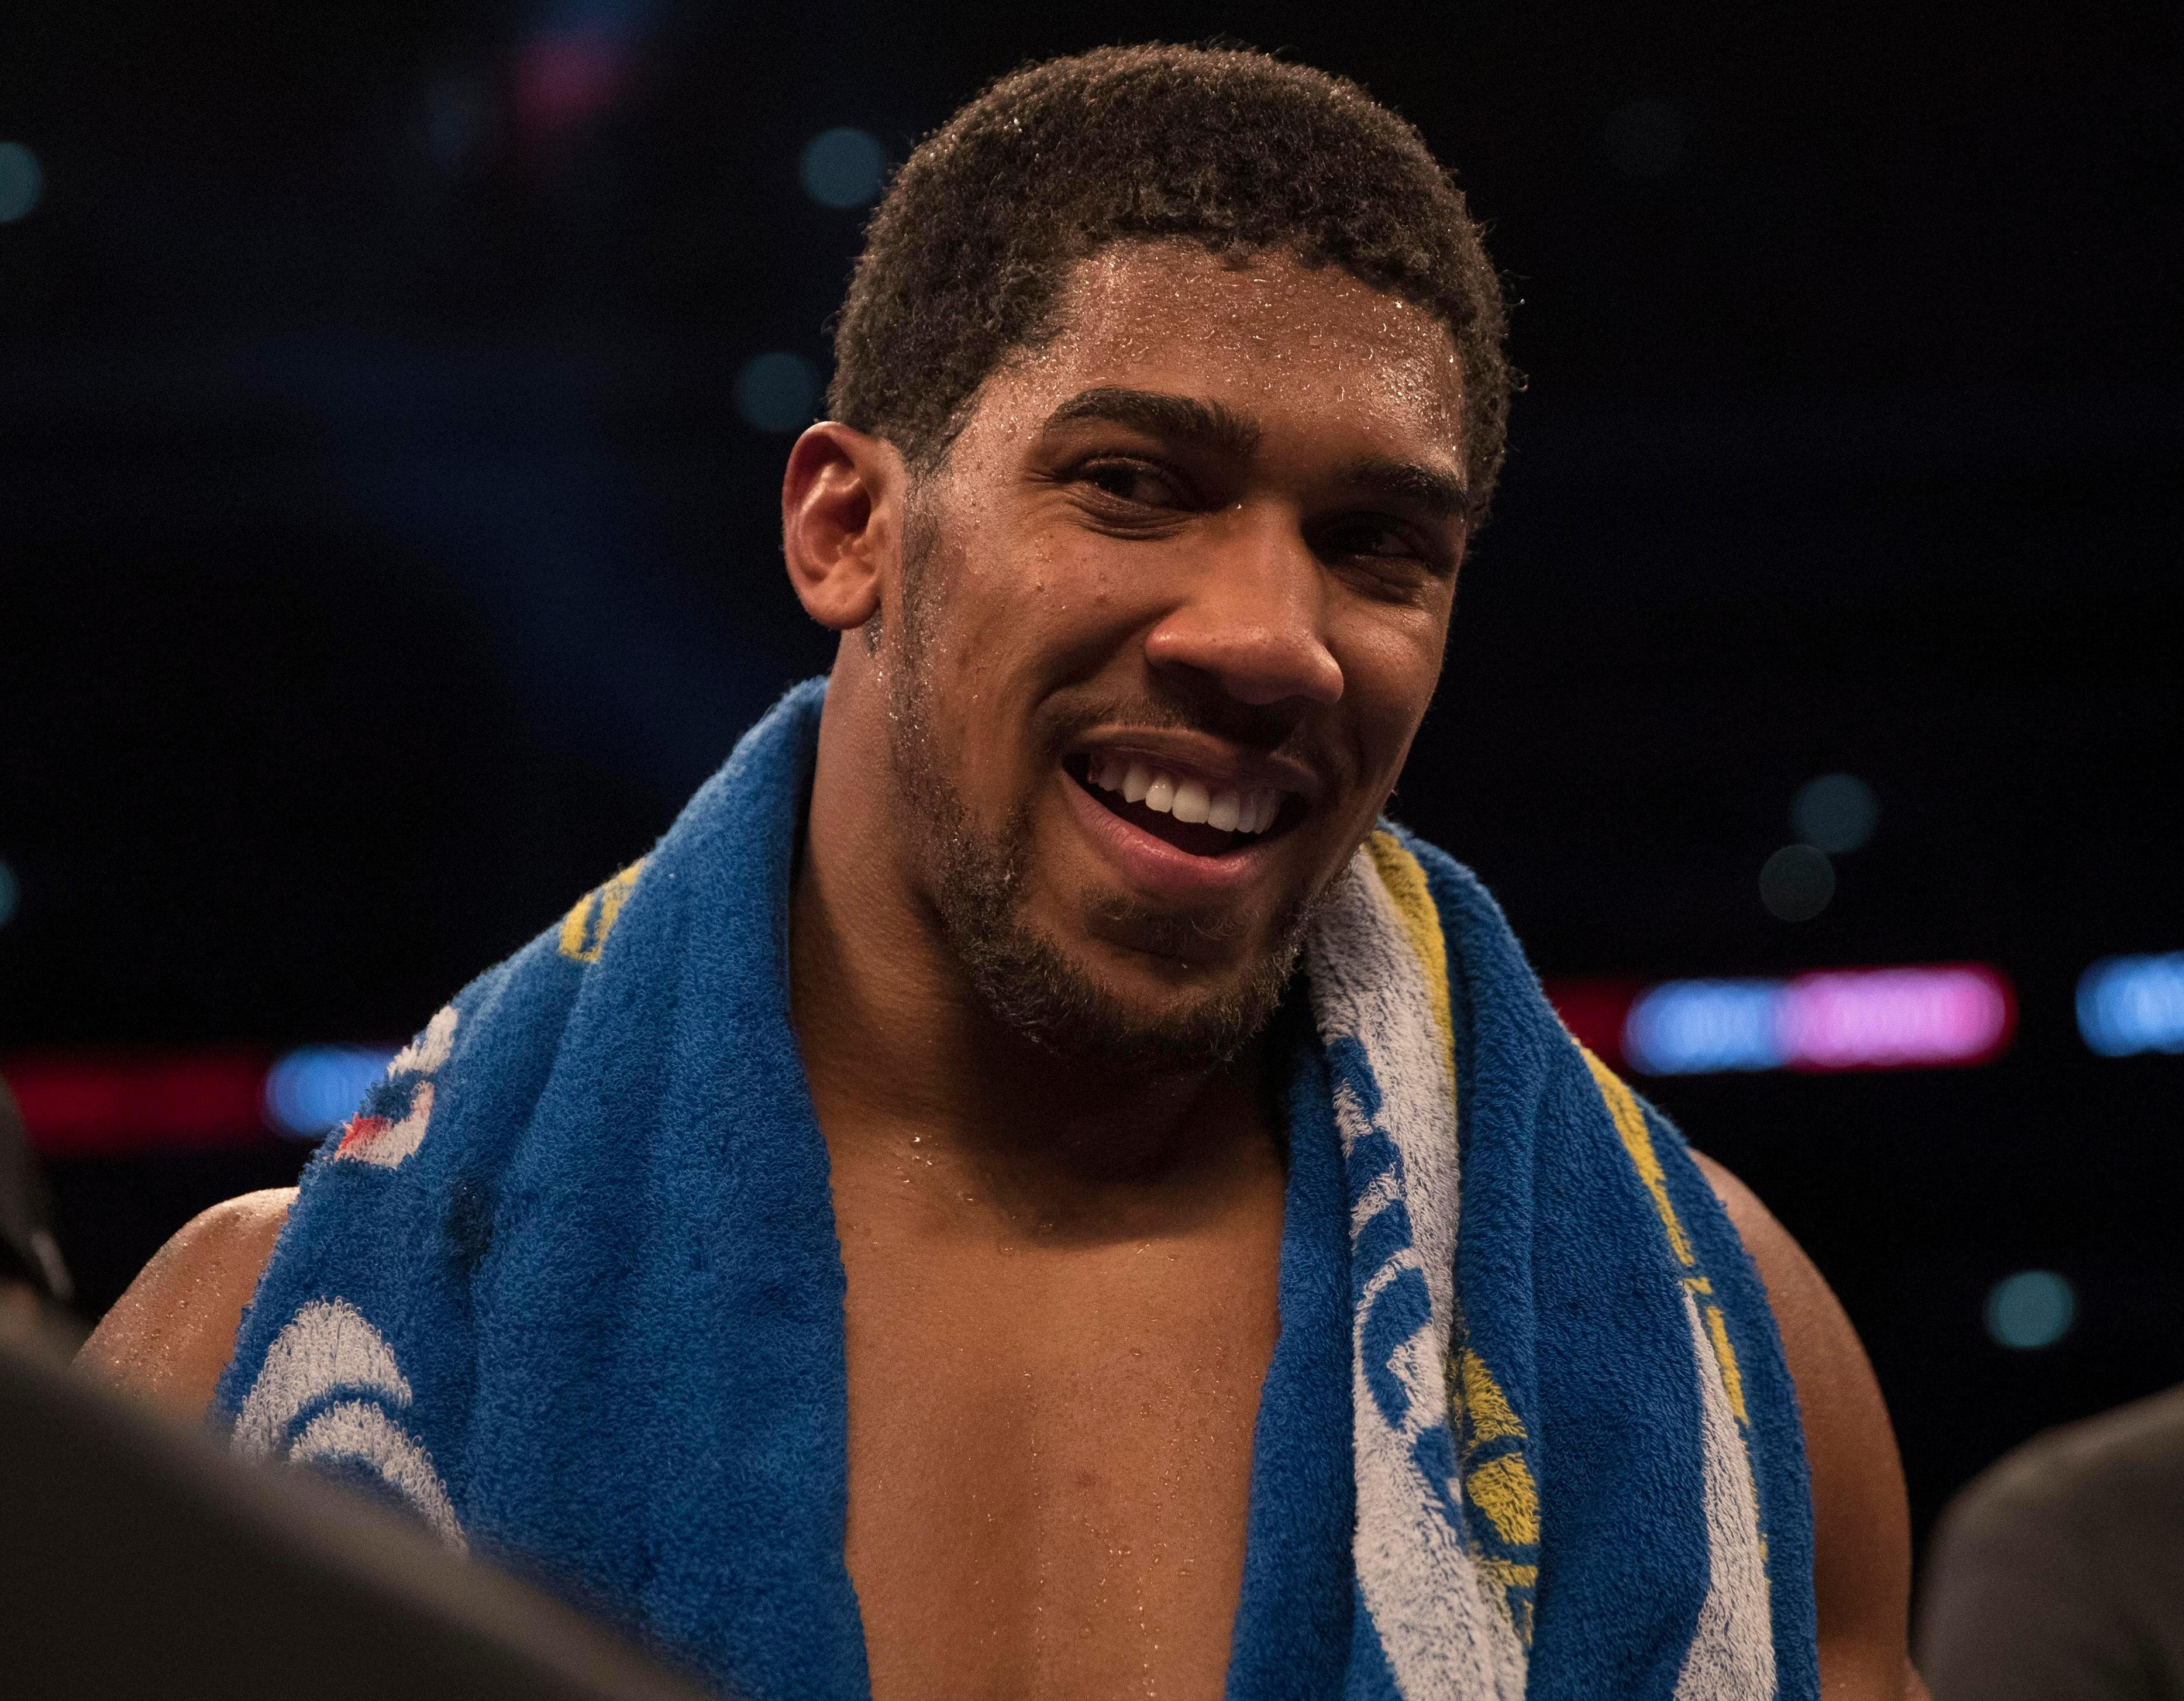 Anthony Joshua is 'nothing out of the ordinary' according toOleksandr Usyk